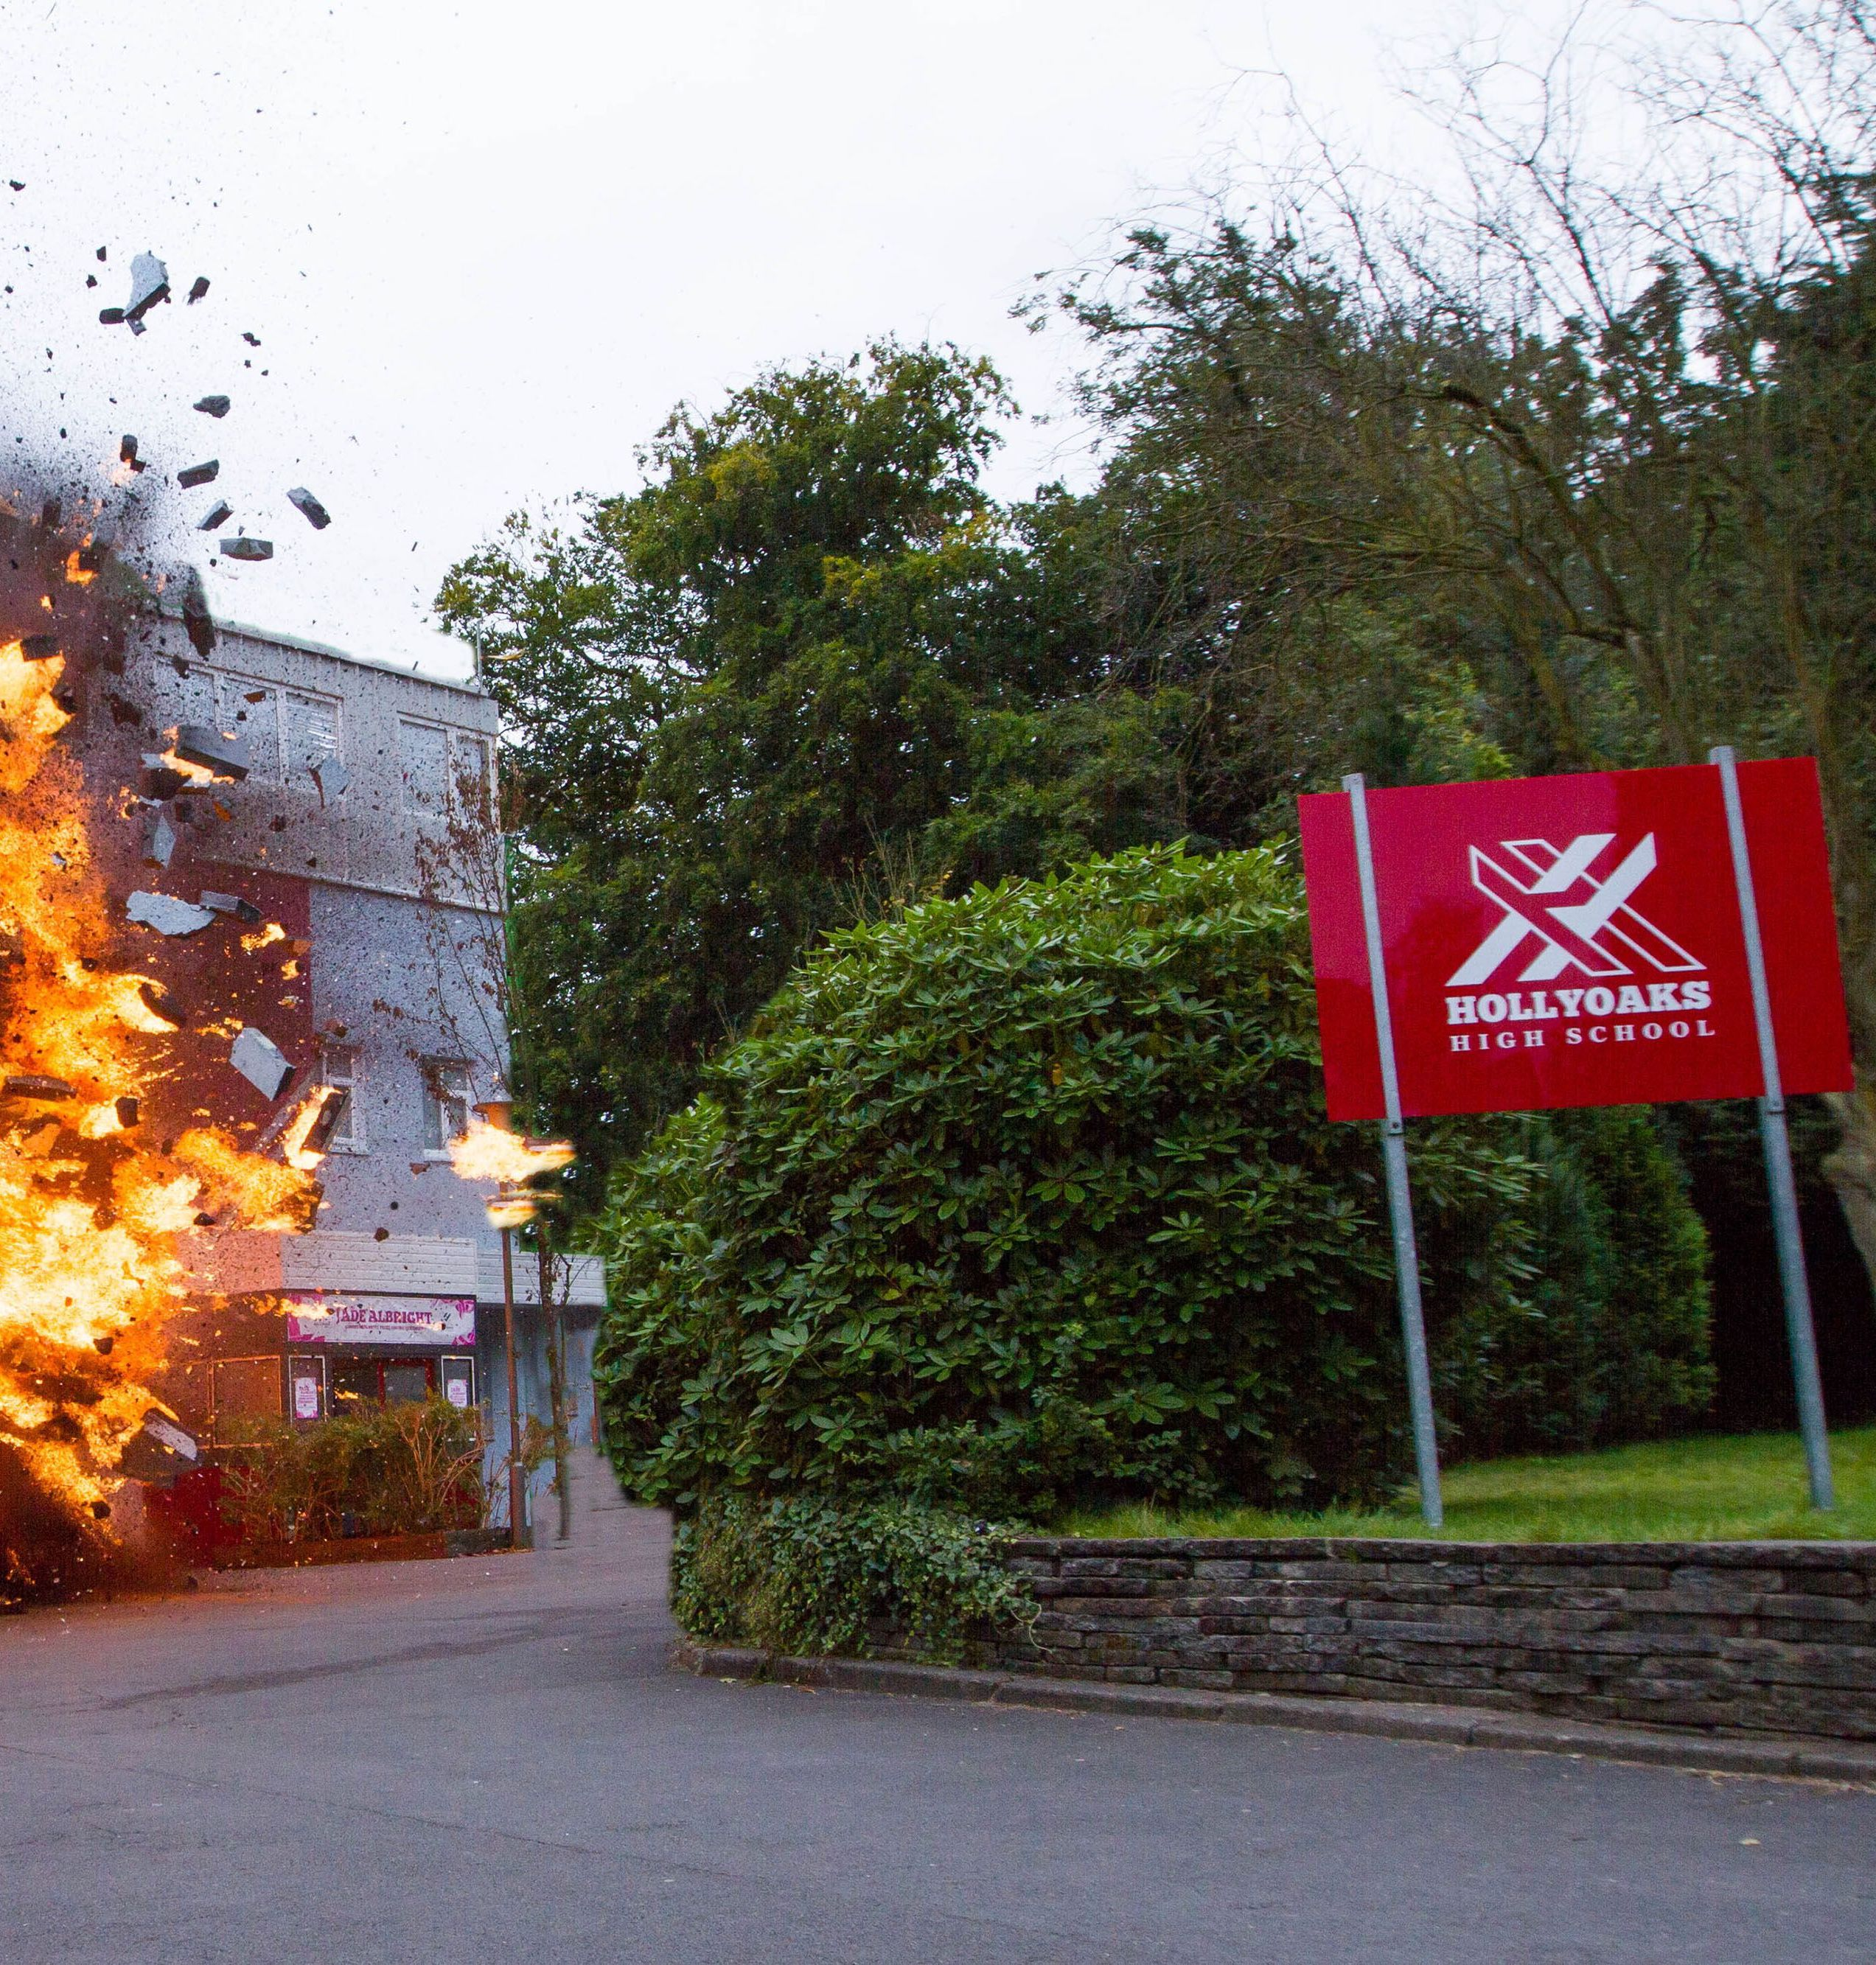 soaps hollyoaks explosion scene ce07zoh626anebvu5jgf 4 10 Things You Never Knew About Hollyoaks